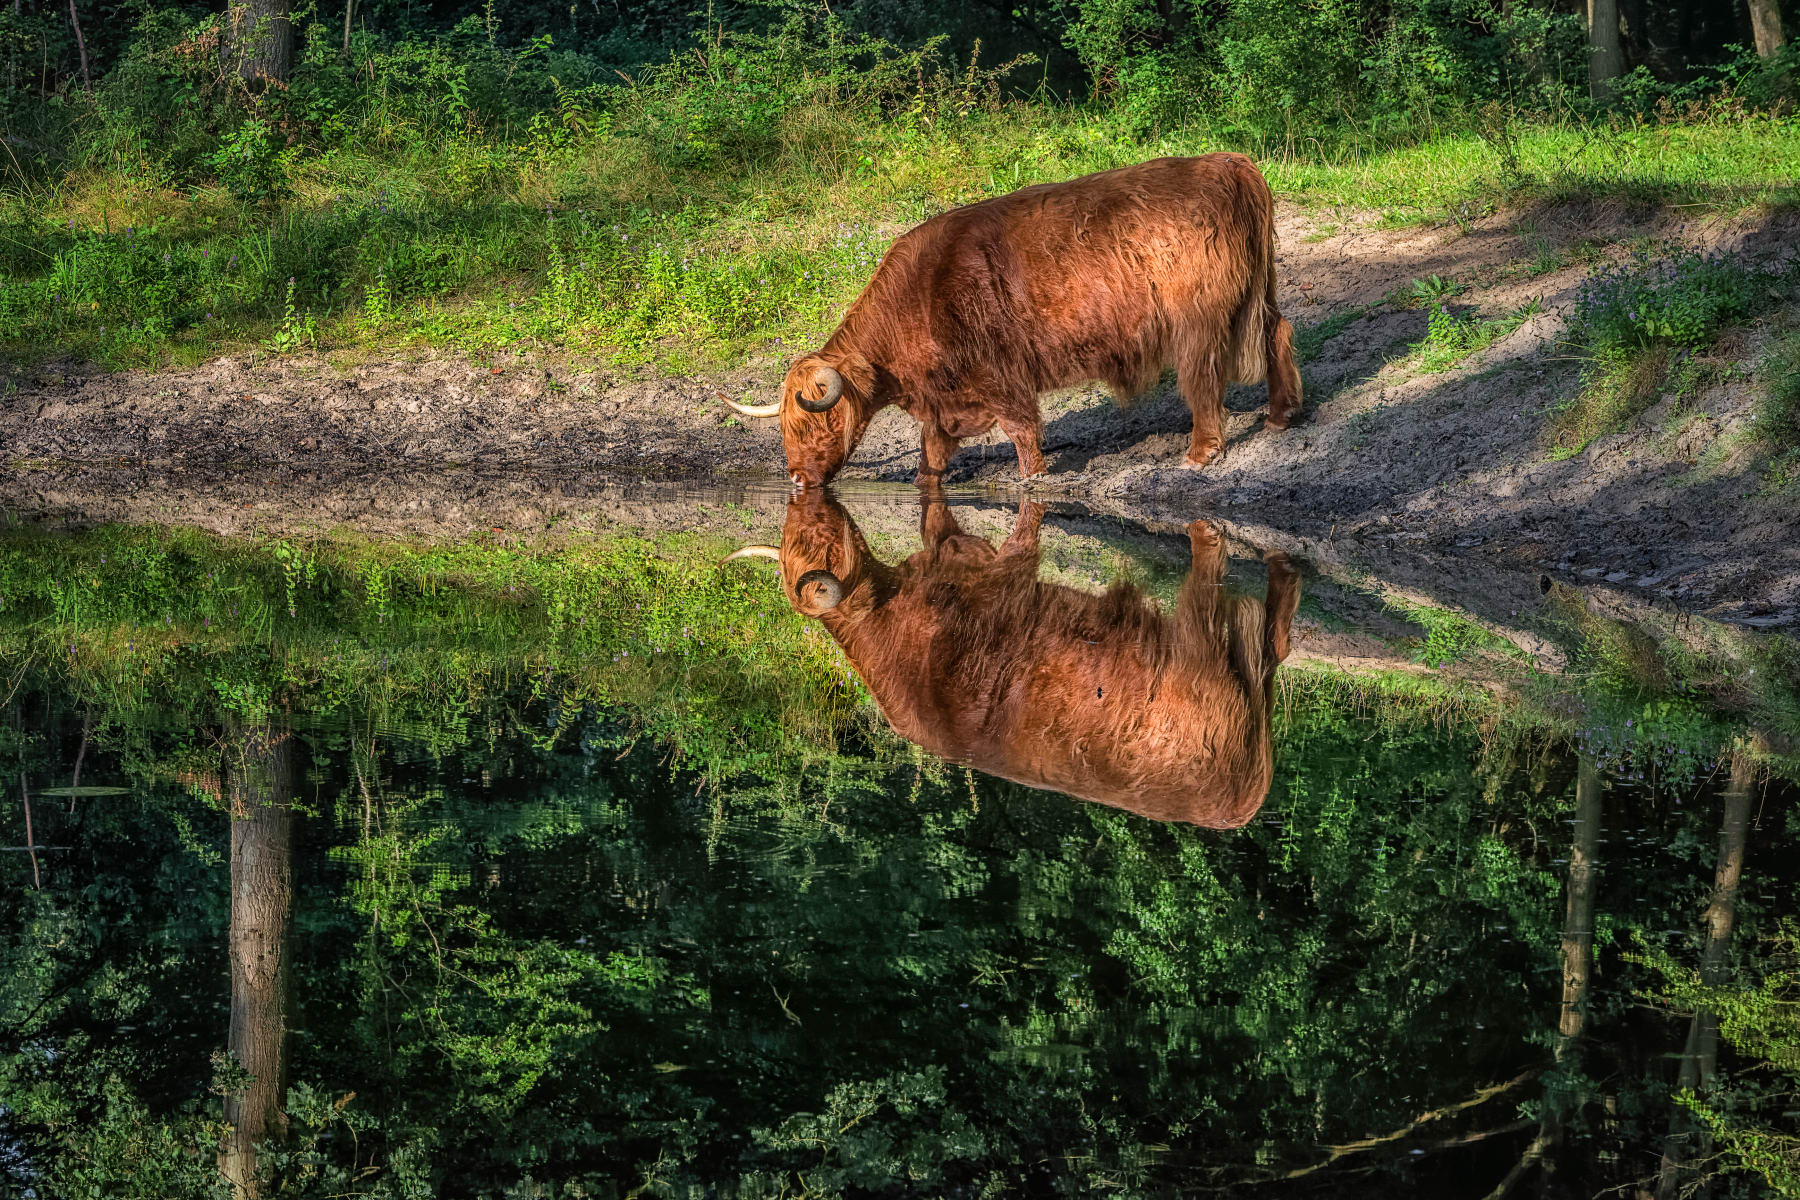 drinking from its own reflection